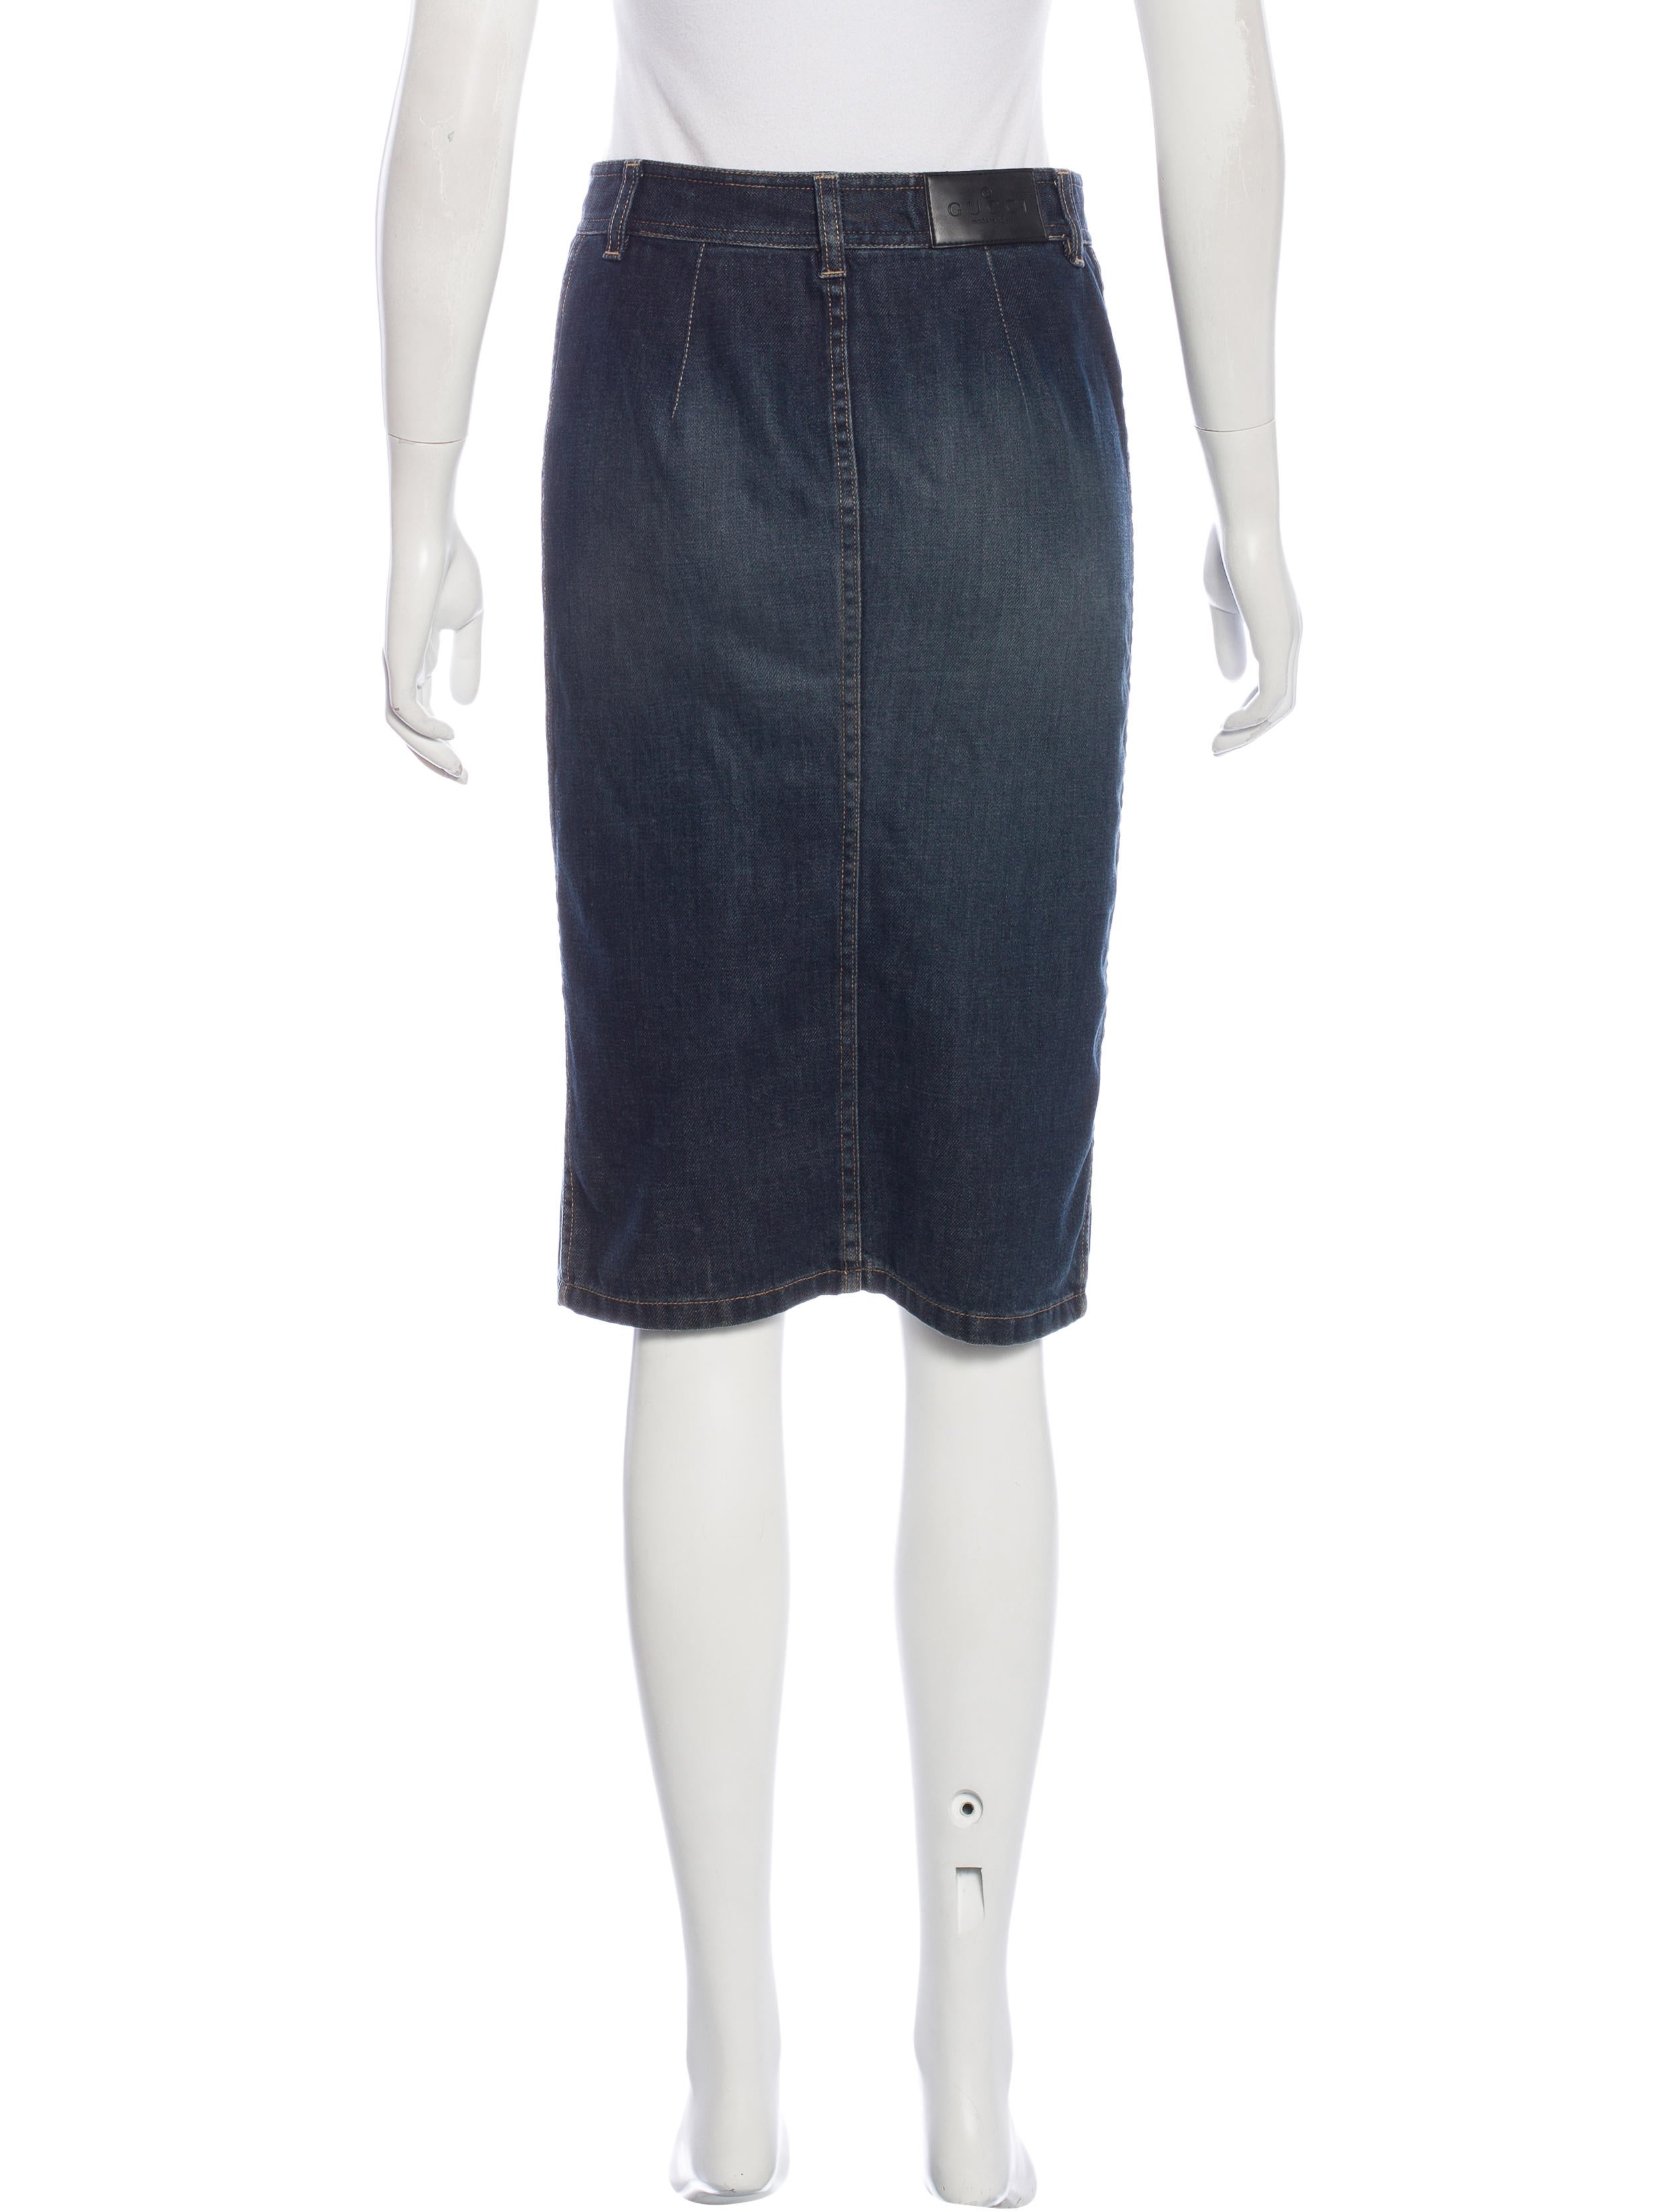 Gucci Denim Pencil Skirt - Clothing - GUC137529 | The RealReal